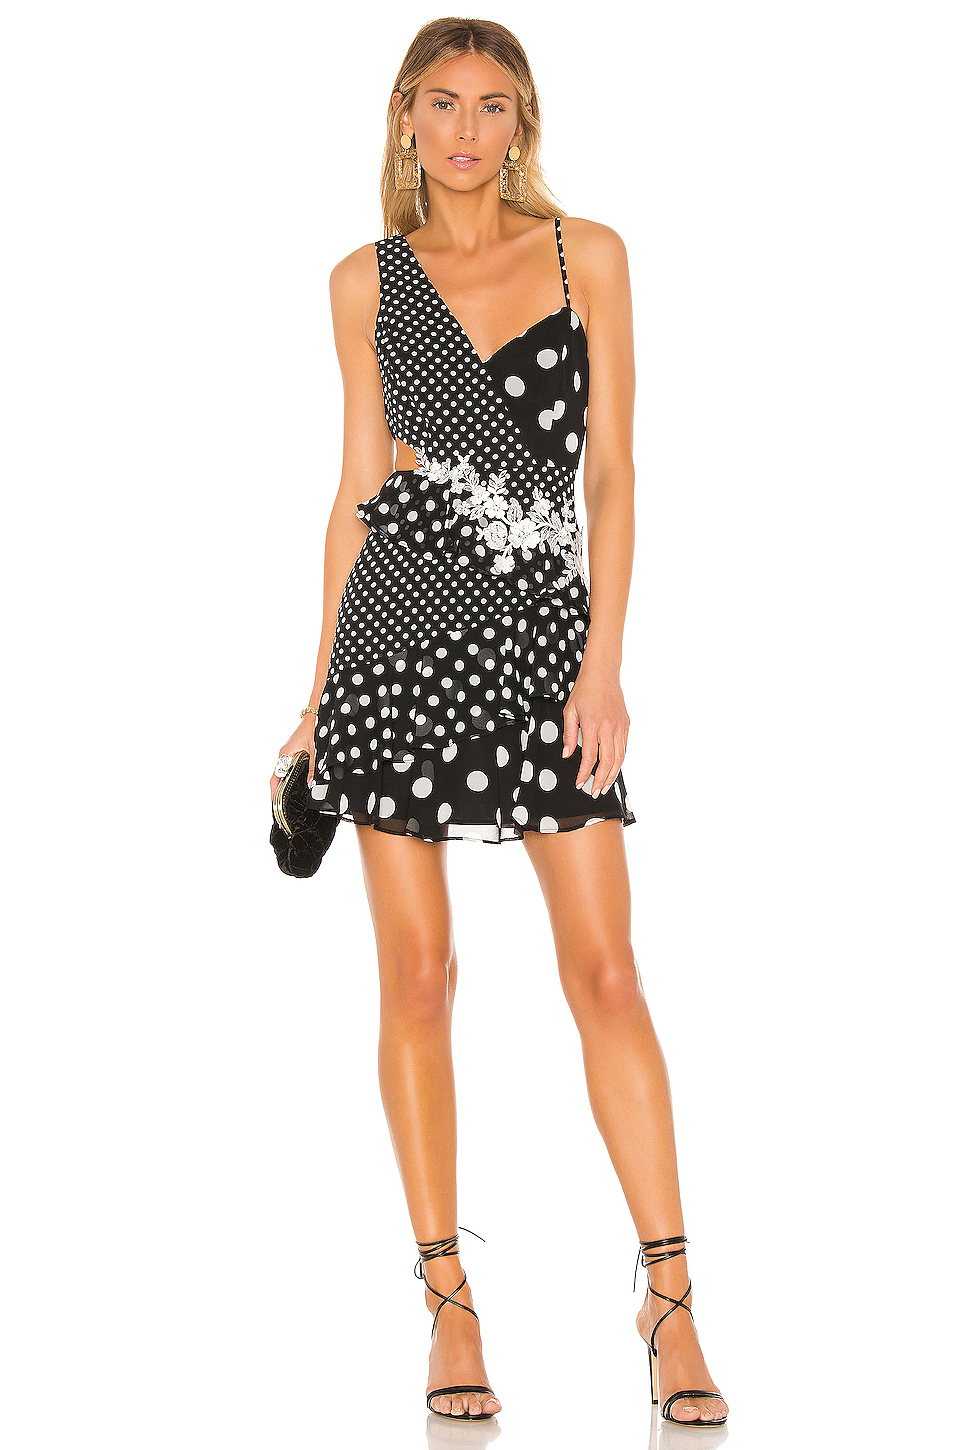 4bed80faa Buy Original BCBGMAXAZRIA Polka Dot Cut Out Dress at Indonesia ...